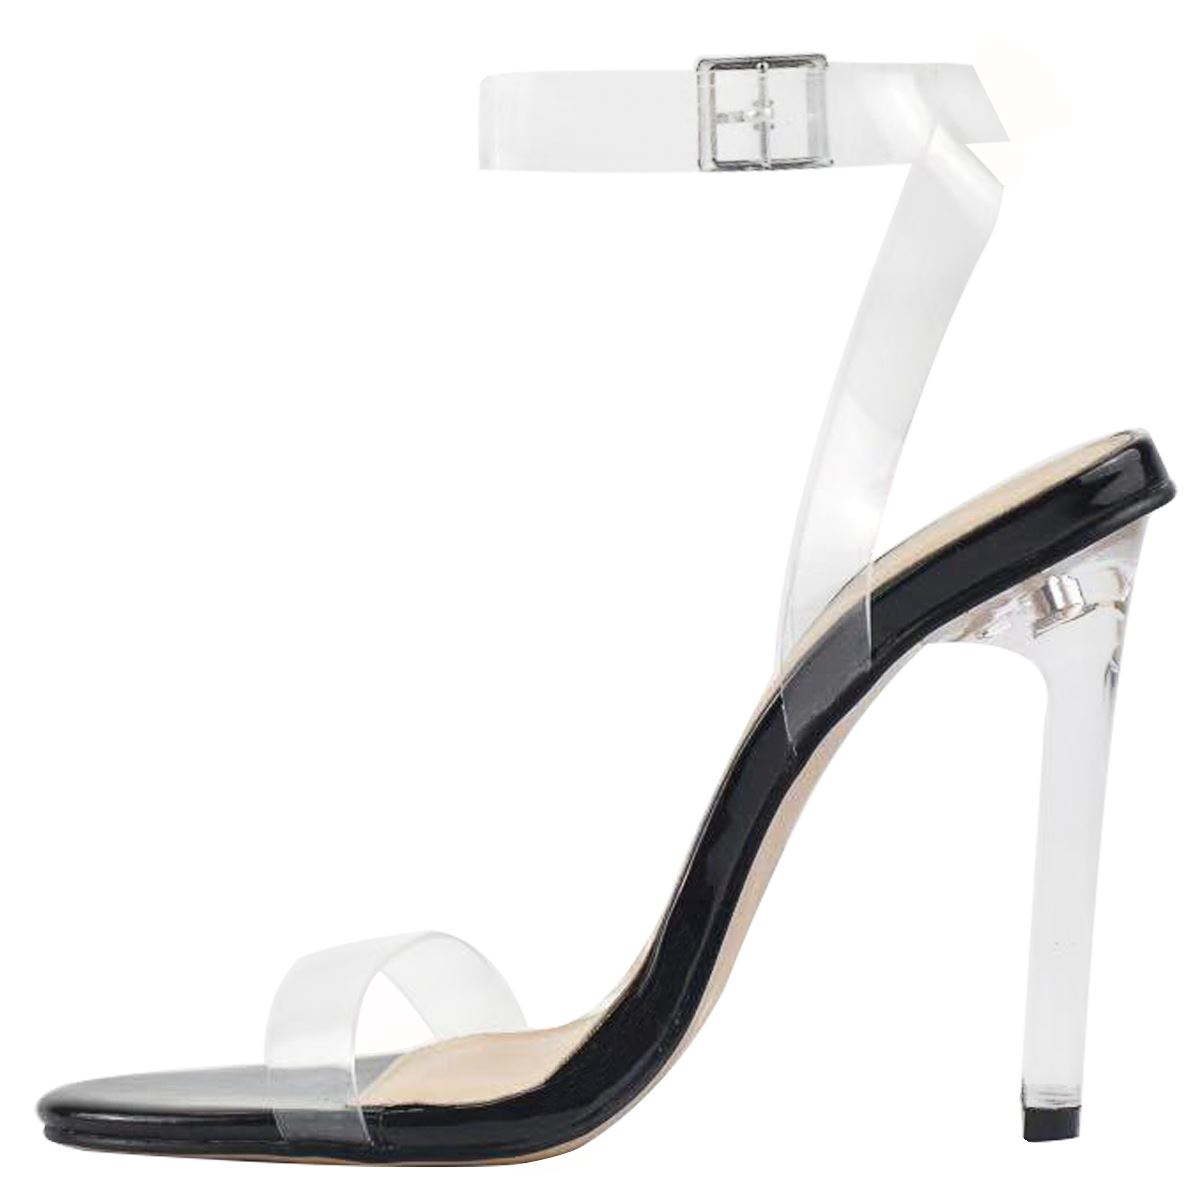 Details about New Womens High Heel Nude Black Perspex Clear Strappy Party Sandals Barely There